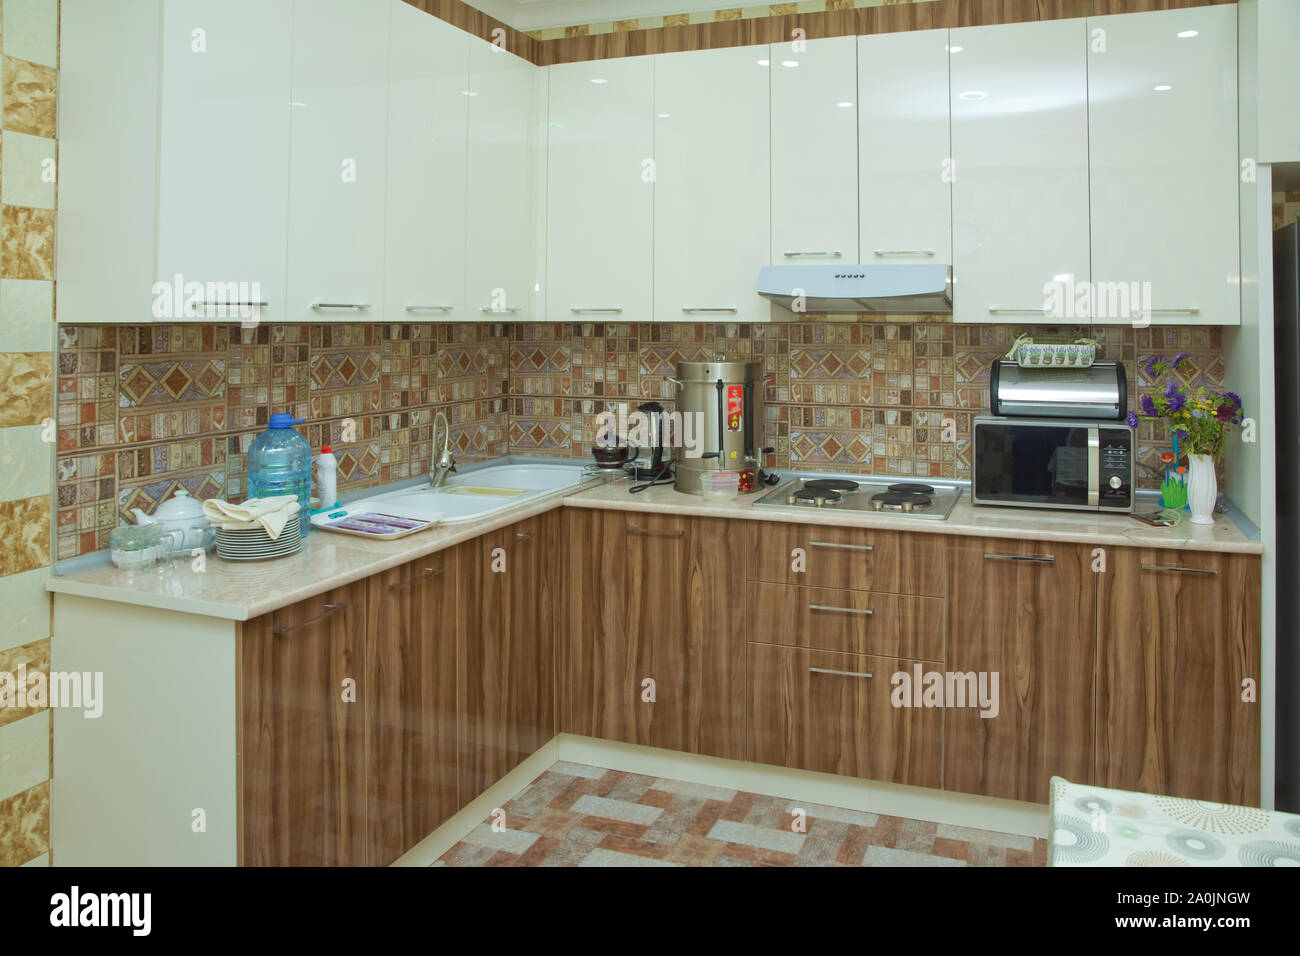 Brown And White Kitchen Design Refrigerator Modern Kitchen With Brown Kitchen Cabinets Oversized Kitchen Stylish Interior With Dining Stock Photo Alamy